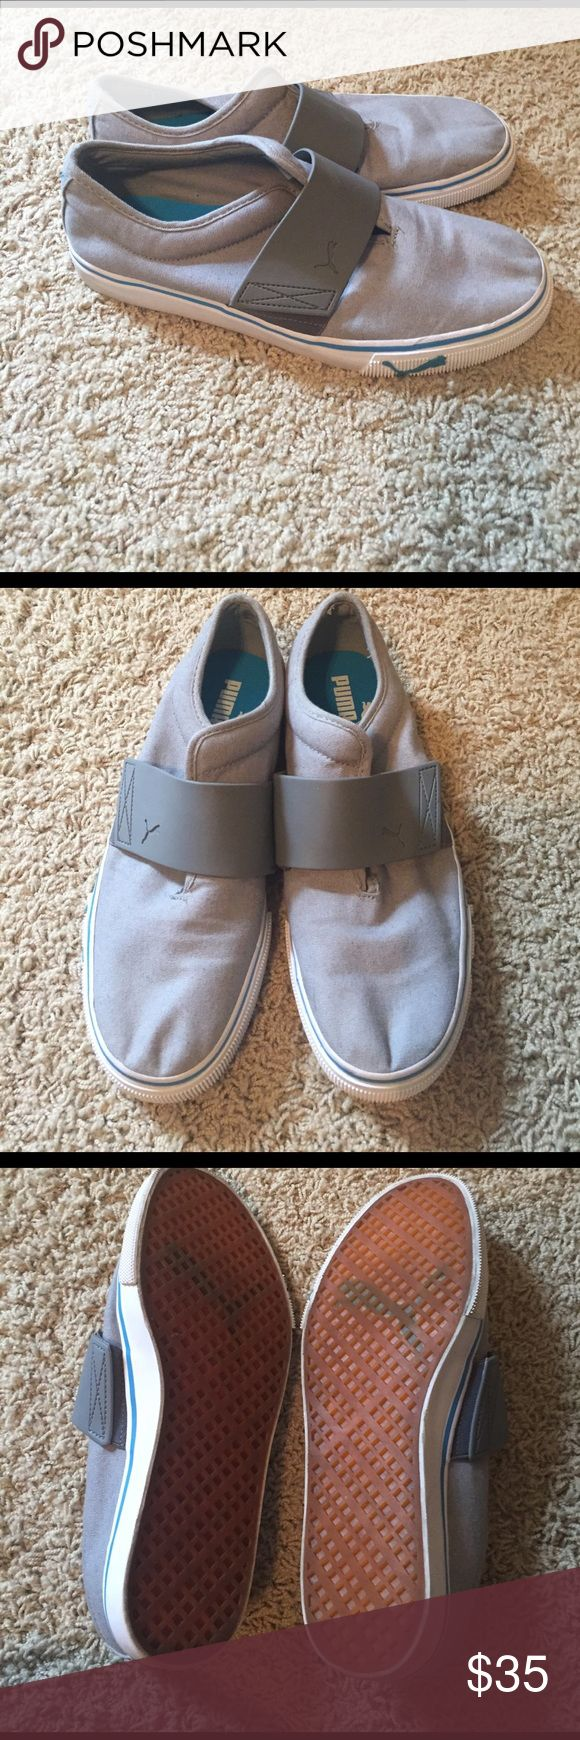 ✅SALE PUMA slip-on shoes for men Excellent condition. Worn once. Light gray with white soles. Very comfy. Puma Shoes Loafers & Slip-Ons